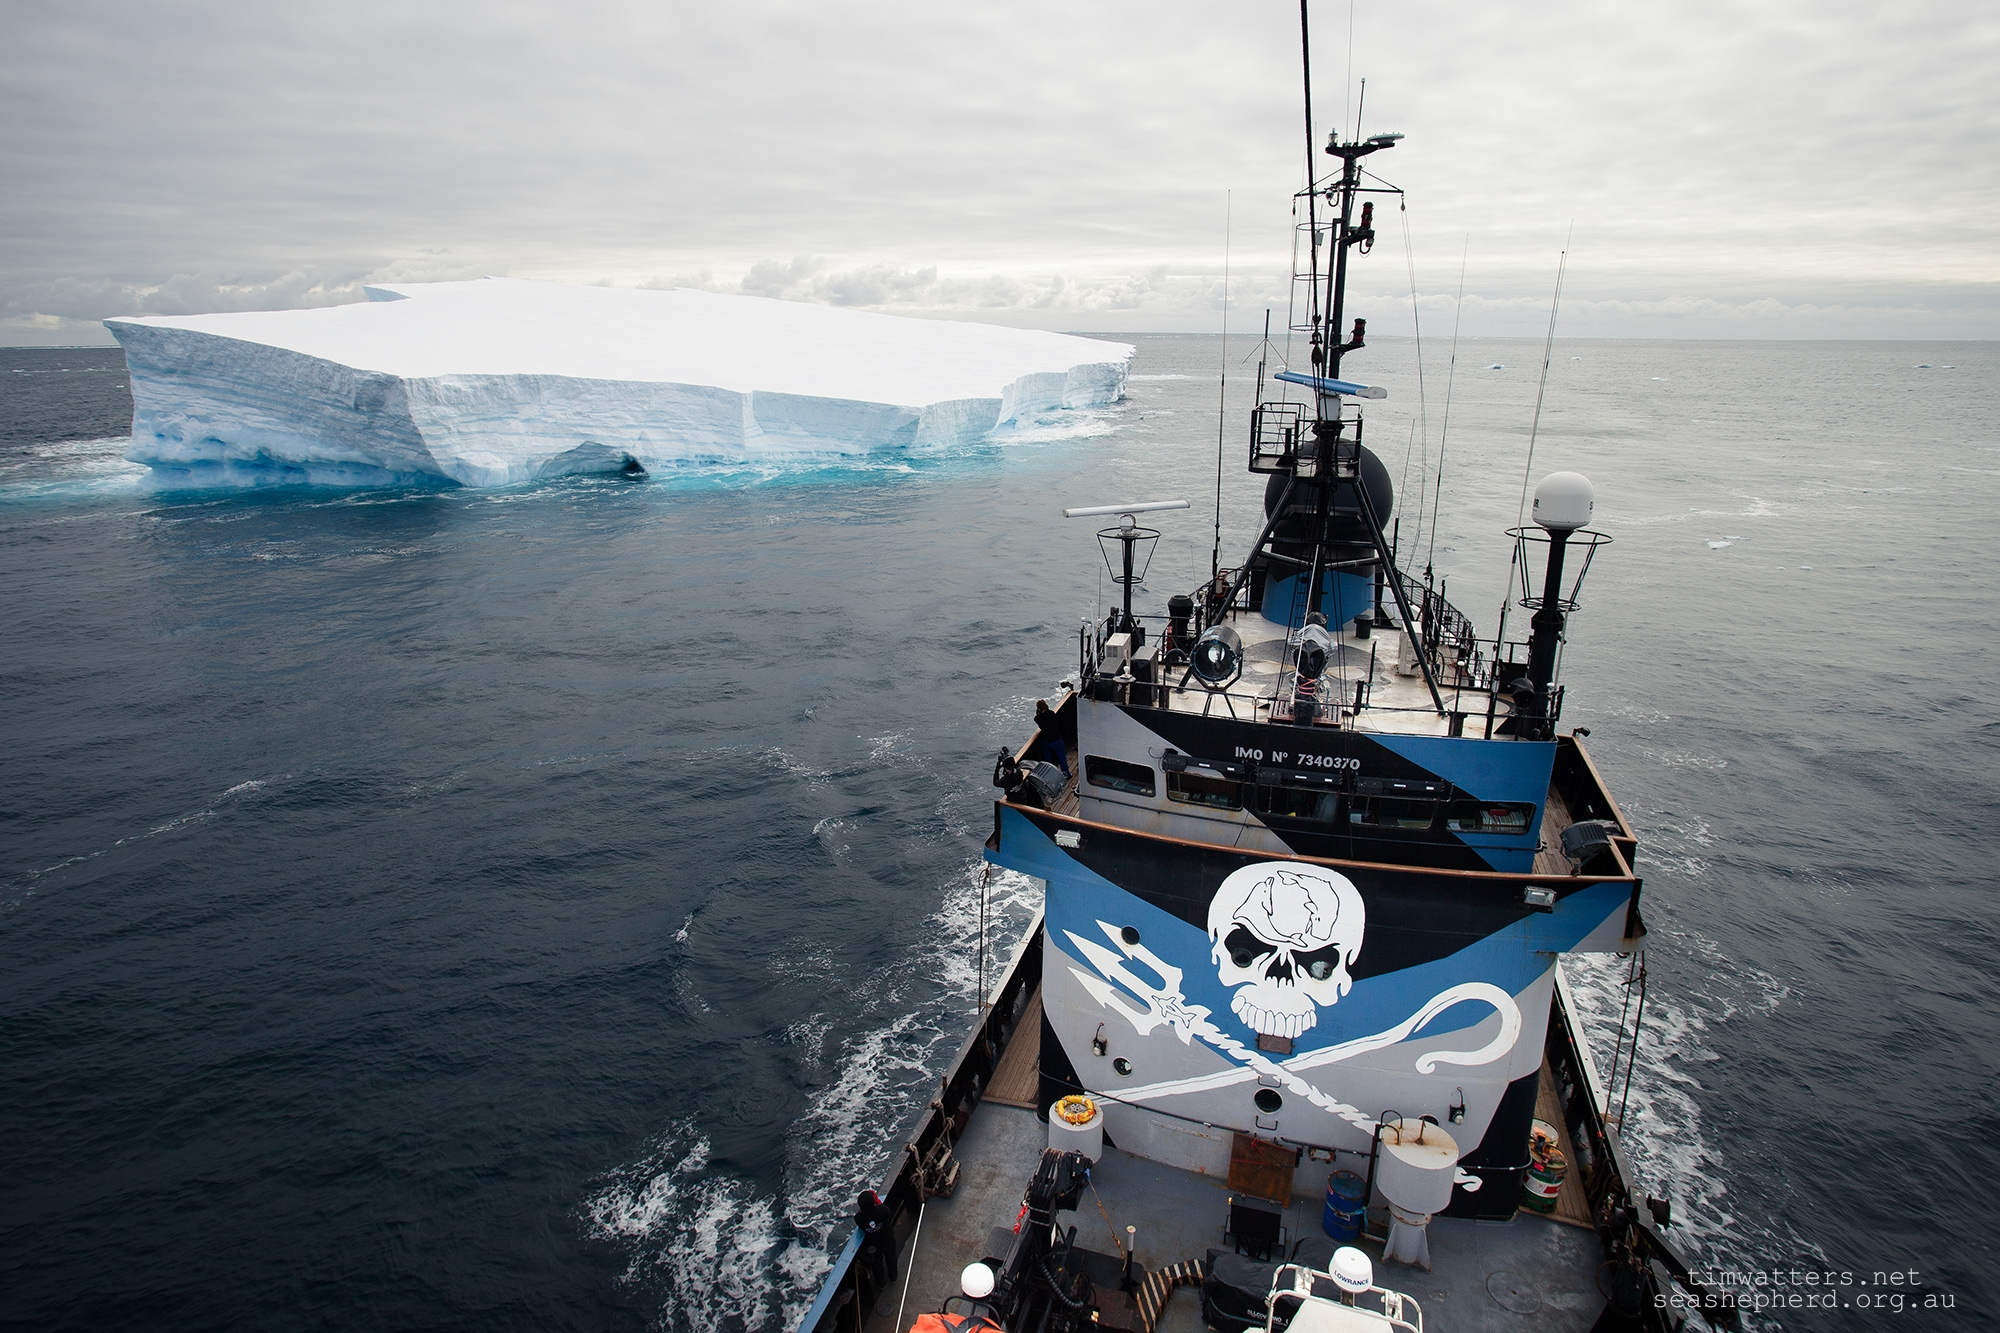 The Steve Irwin sails past an iceberg in the Ross Sea, Antarctica - 2014.